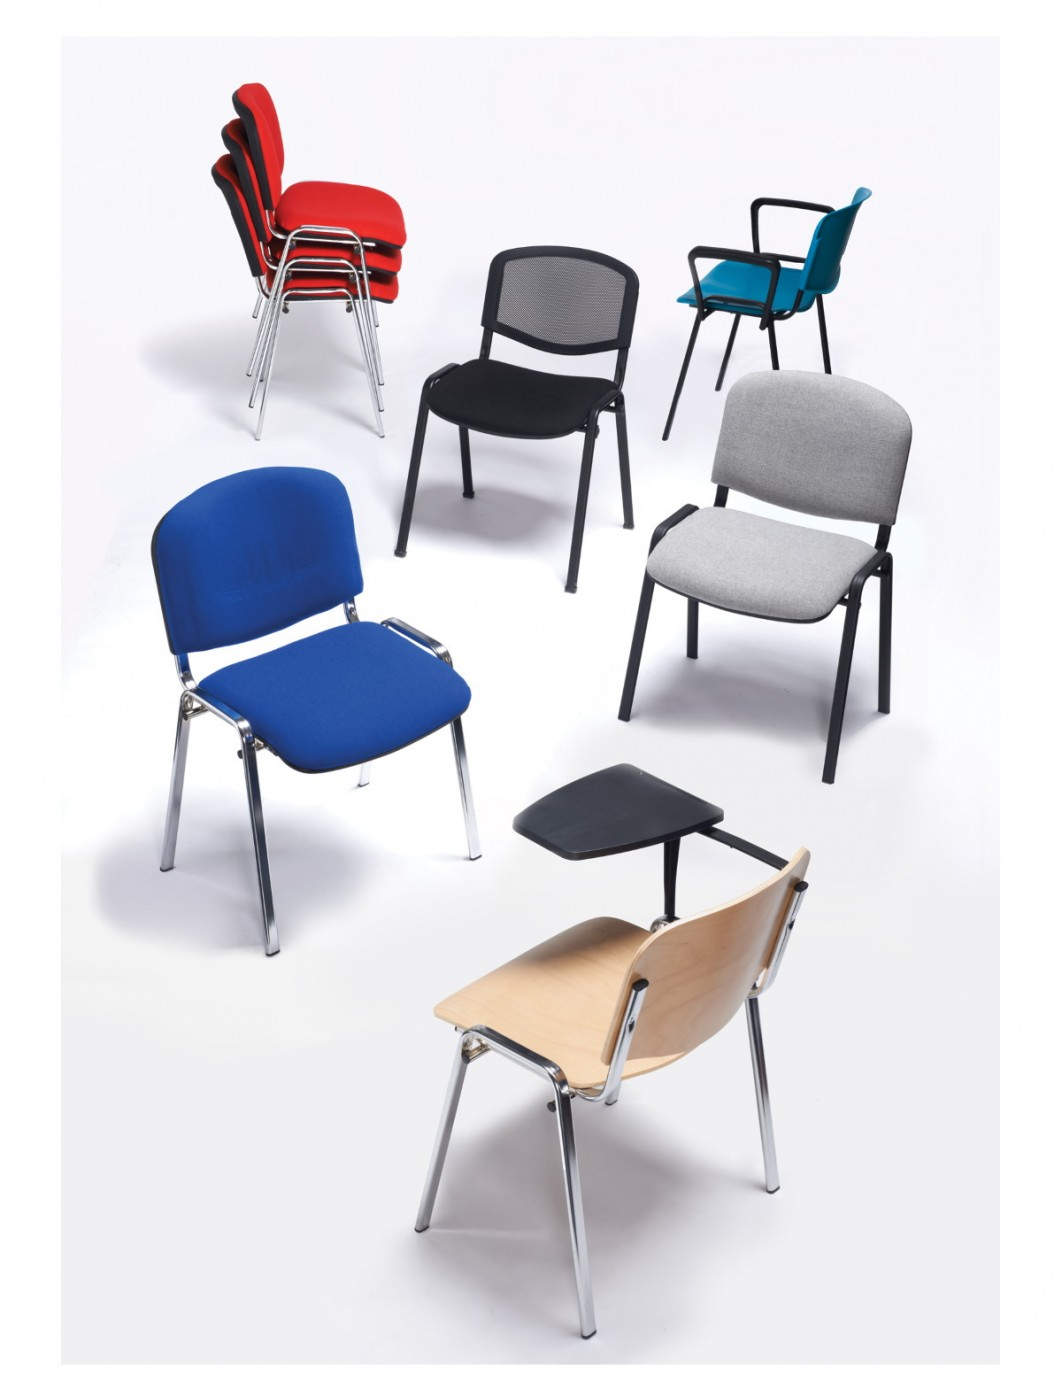 4 Pack of Stacking Chairs Taurus Mesh Back Meeting Chairs TAUMA BOXTAUKA by Dams